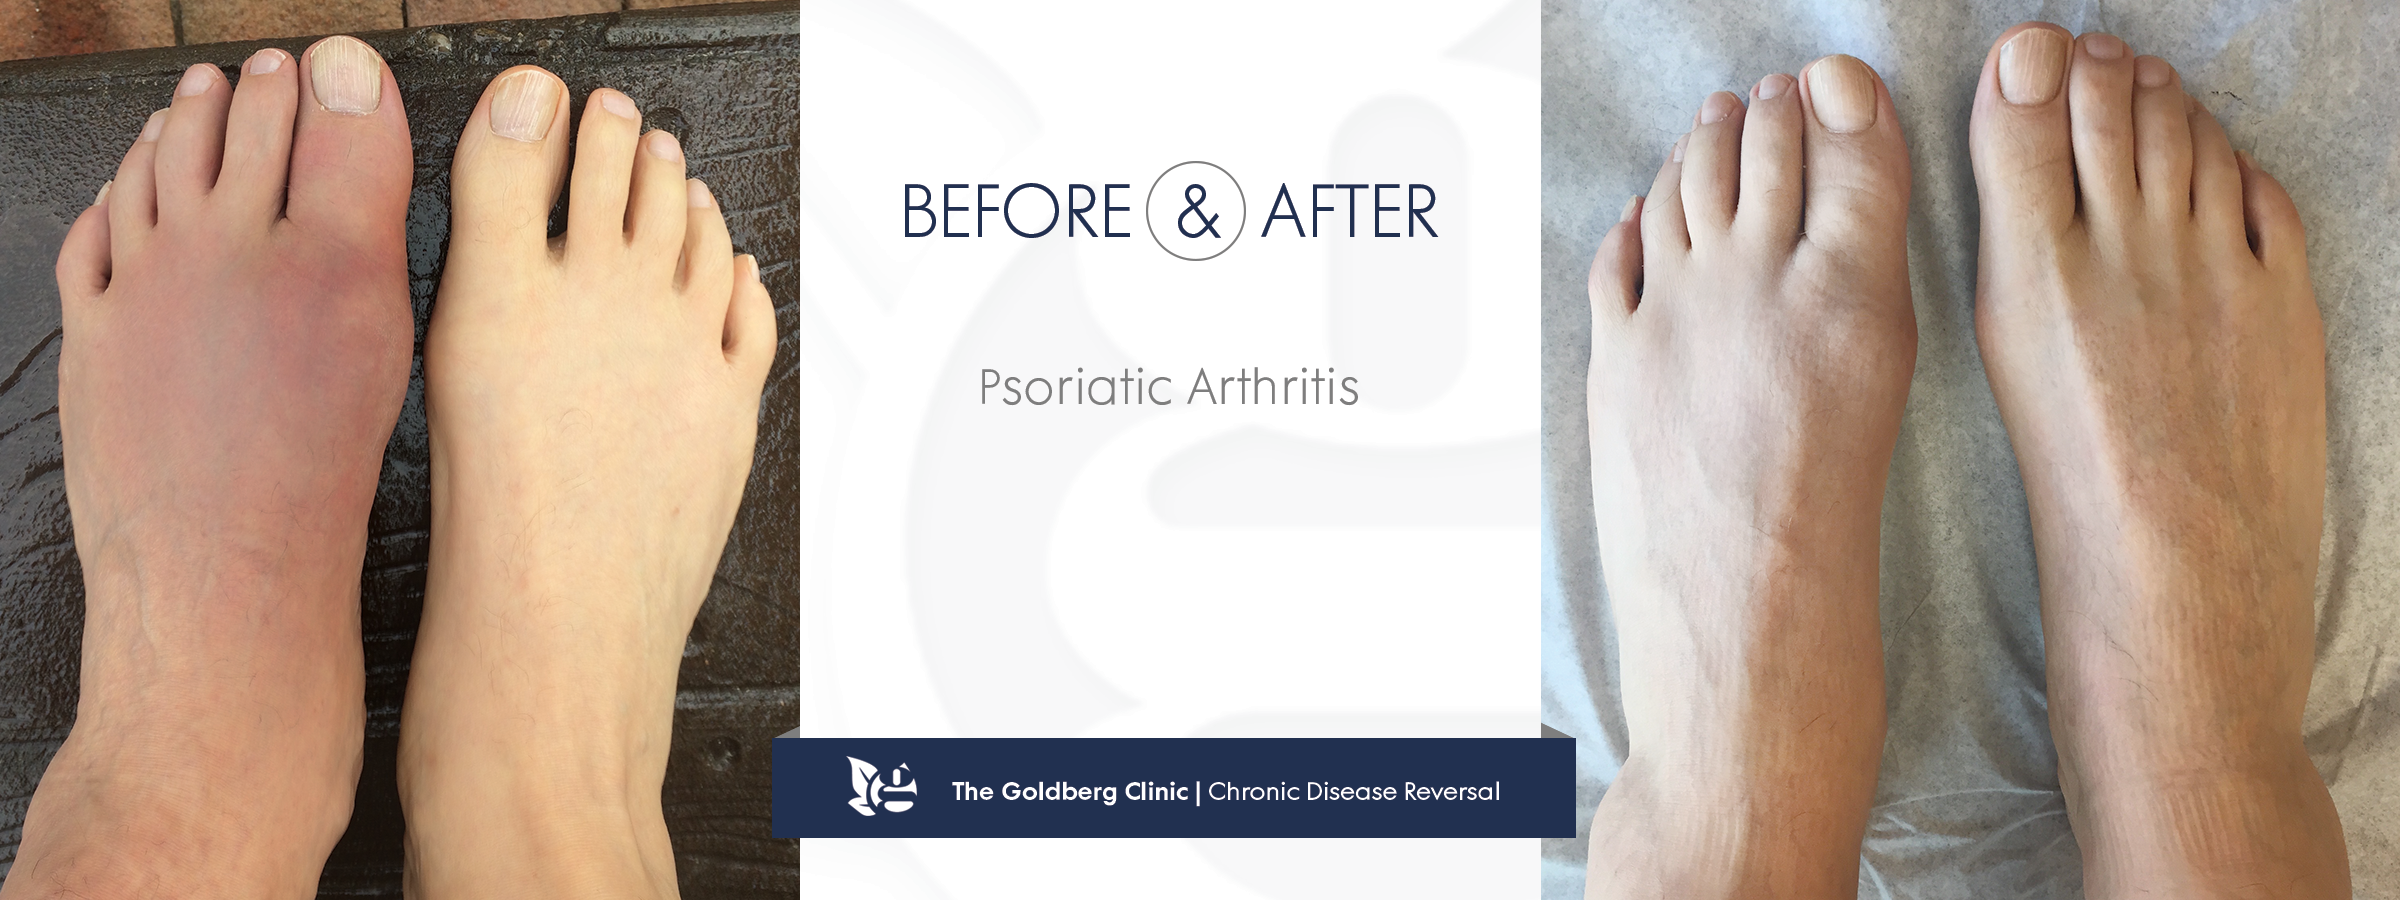 Psoriatic Arthritis Before and After